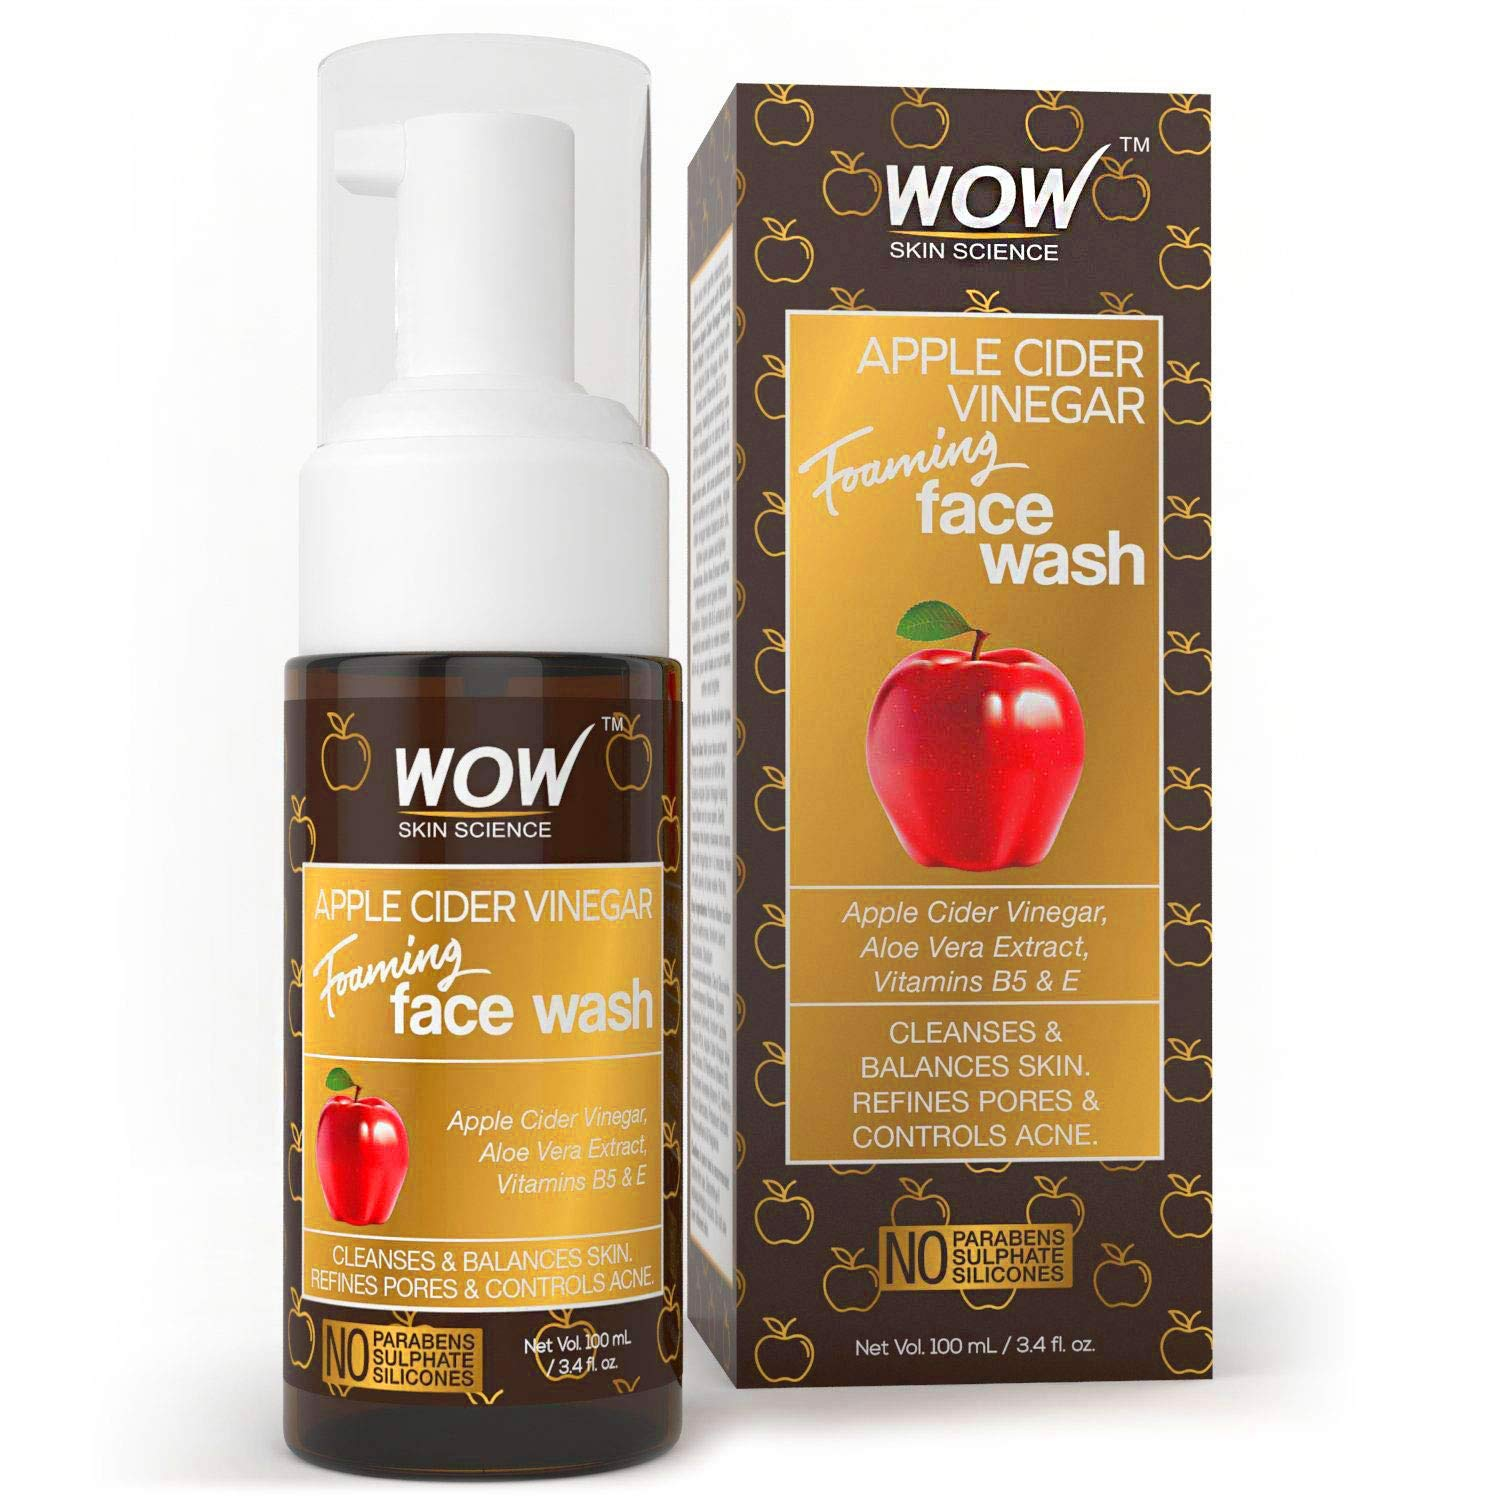 WOW Apple Cider Vinegar Foaming Face Wash Cleanser - Normal, Dry & Oily Skin - Heal, Hydrate For Soft, Clear Skin - Remove Dirt, Oil & Makeup, Reduce Acne Breakouts - Men & Women - All Ages - 100 mL